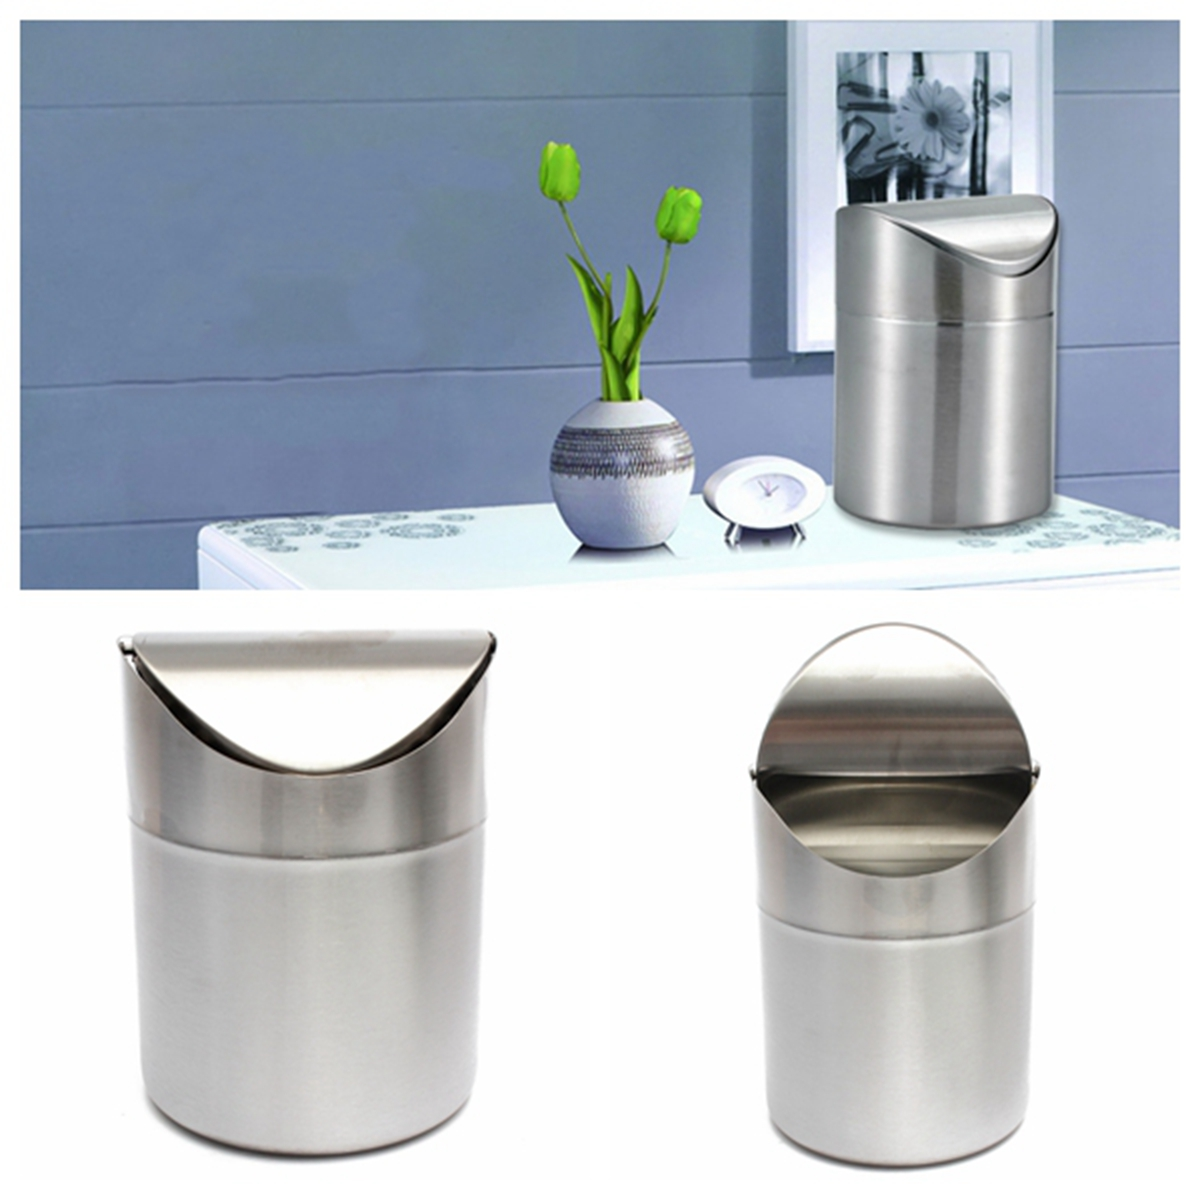 Stainless Steel Kitchen Garbage Can: 1.5L Home Kitchen Table Tidy Stainless Steel Dustbin Trash